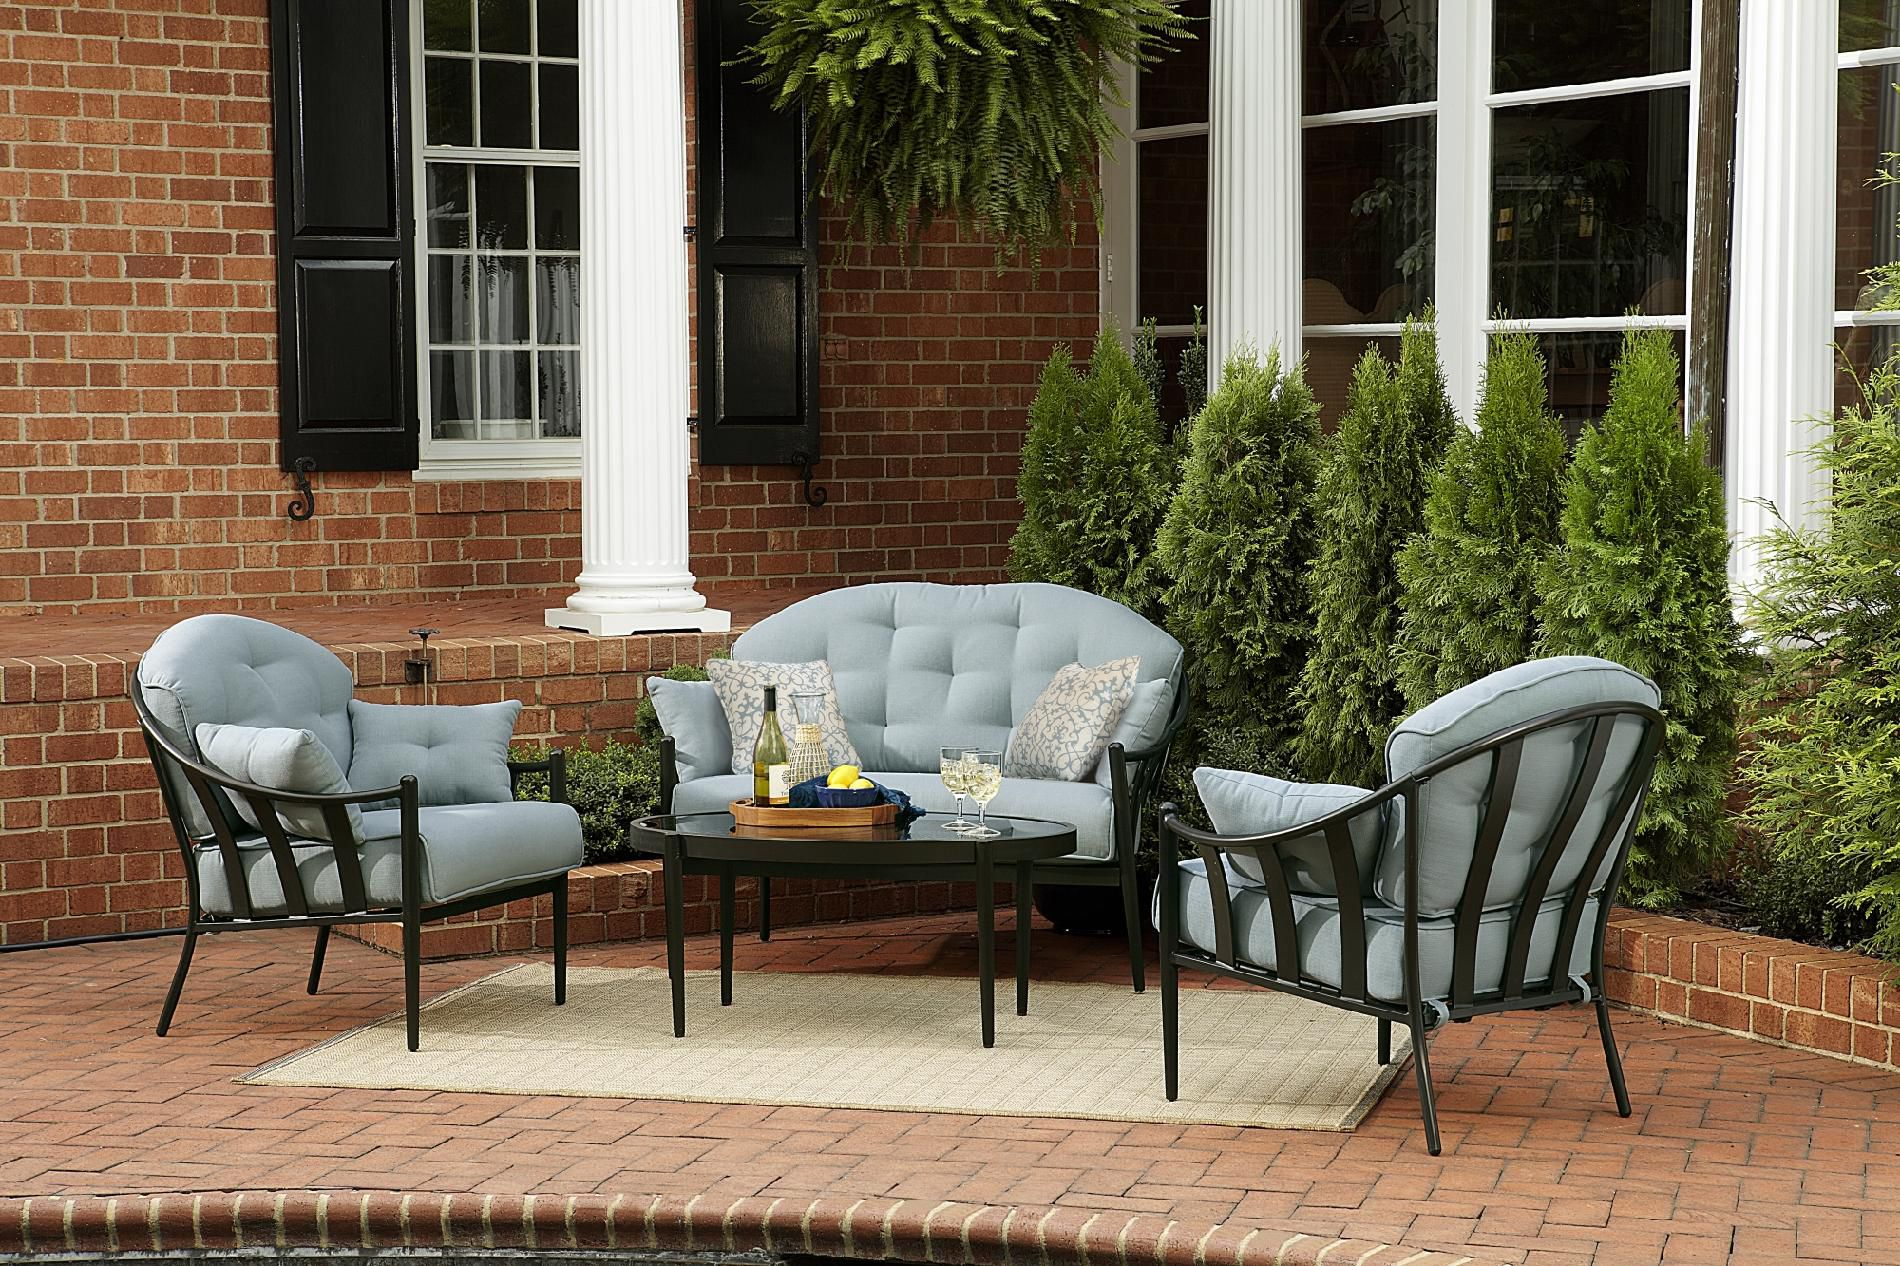 Patio Furniture Jaclyn Smith Patio Furniture Home Decor